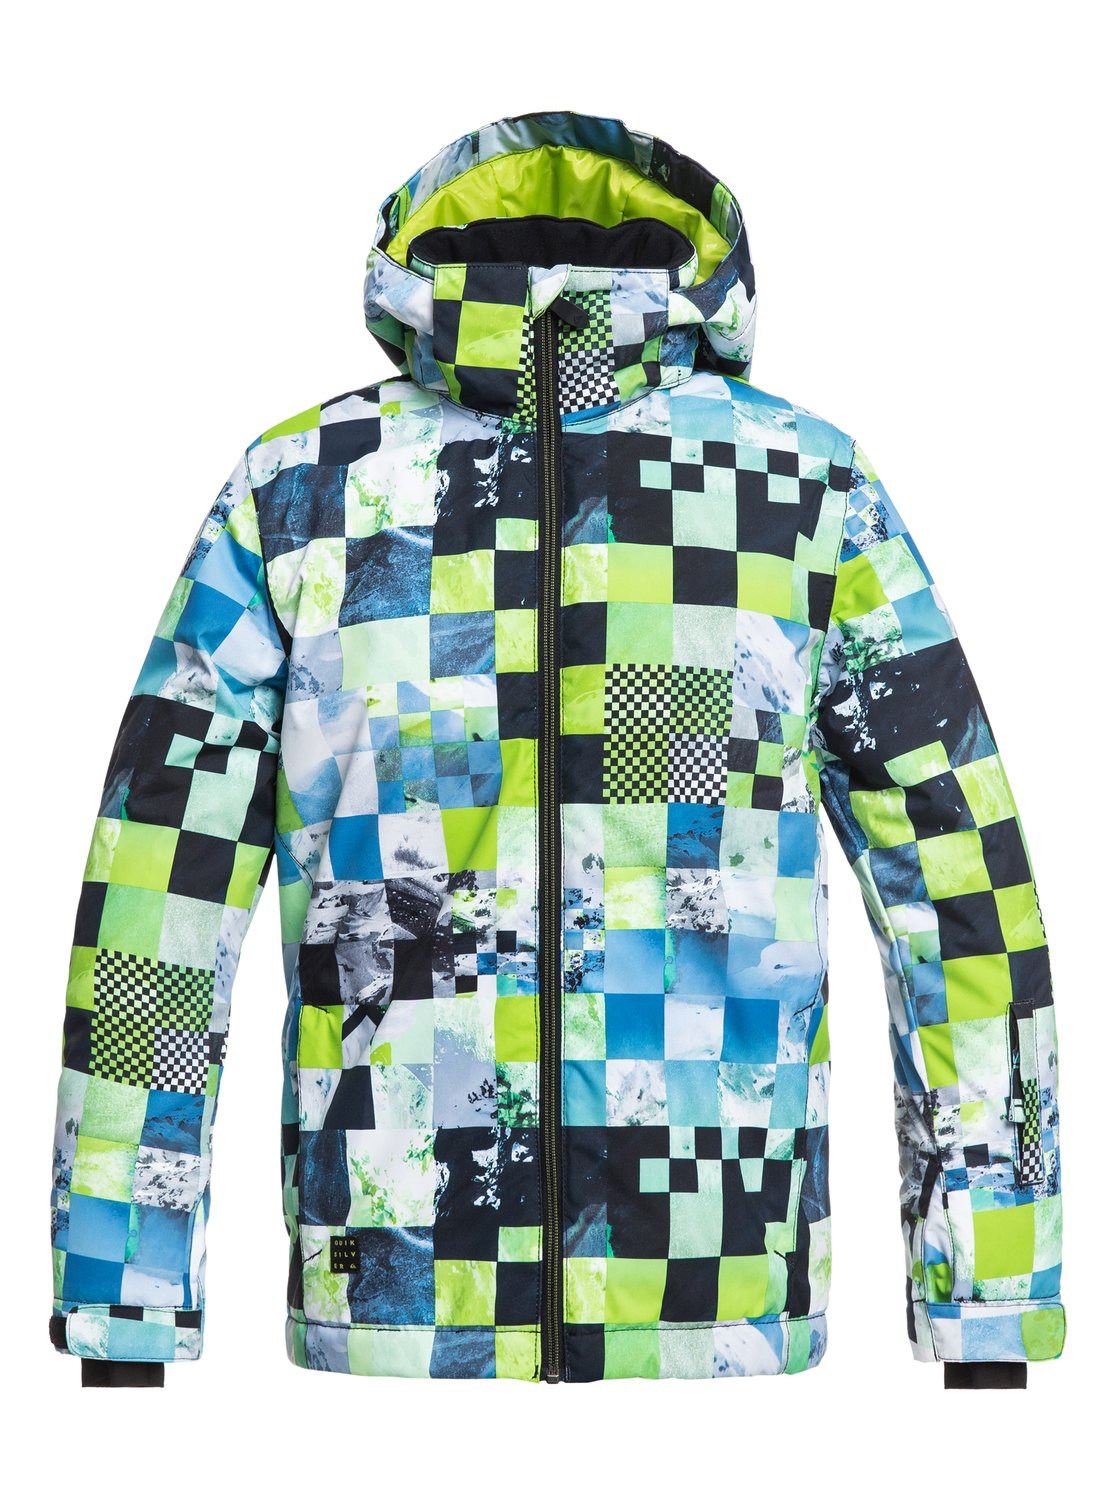 bb020b8da Mission - Snow Jacket for Boys 8-16 3613373692214